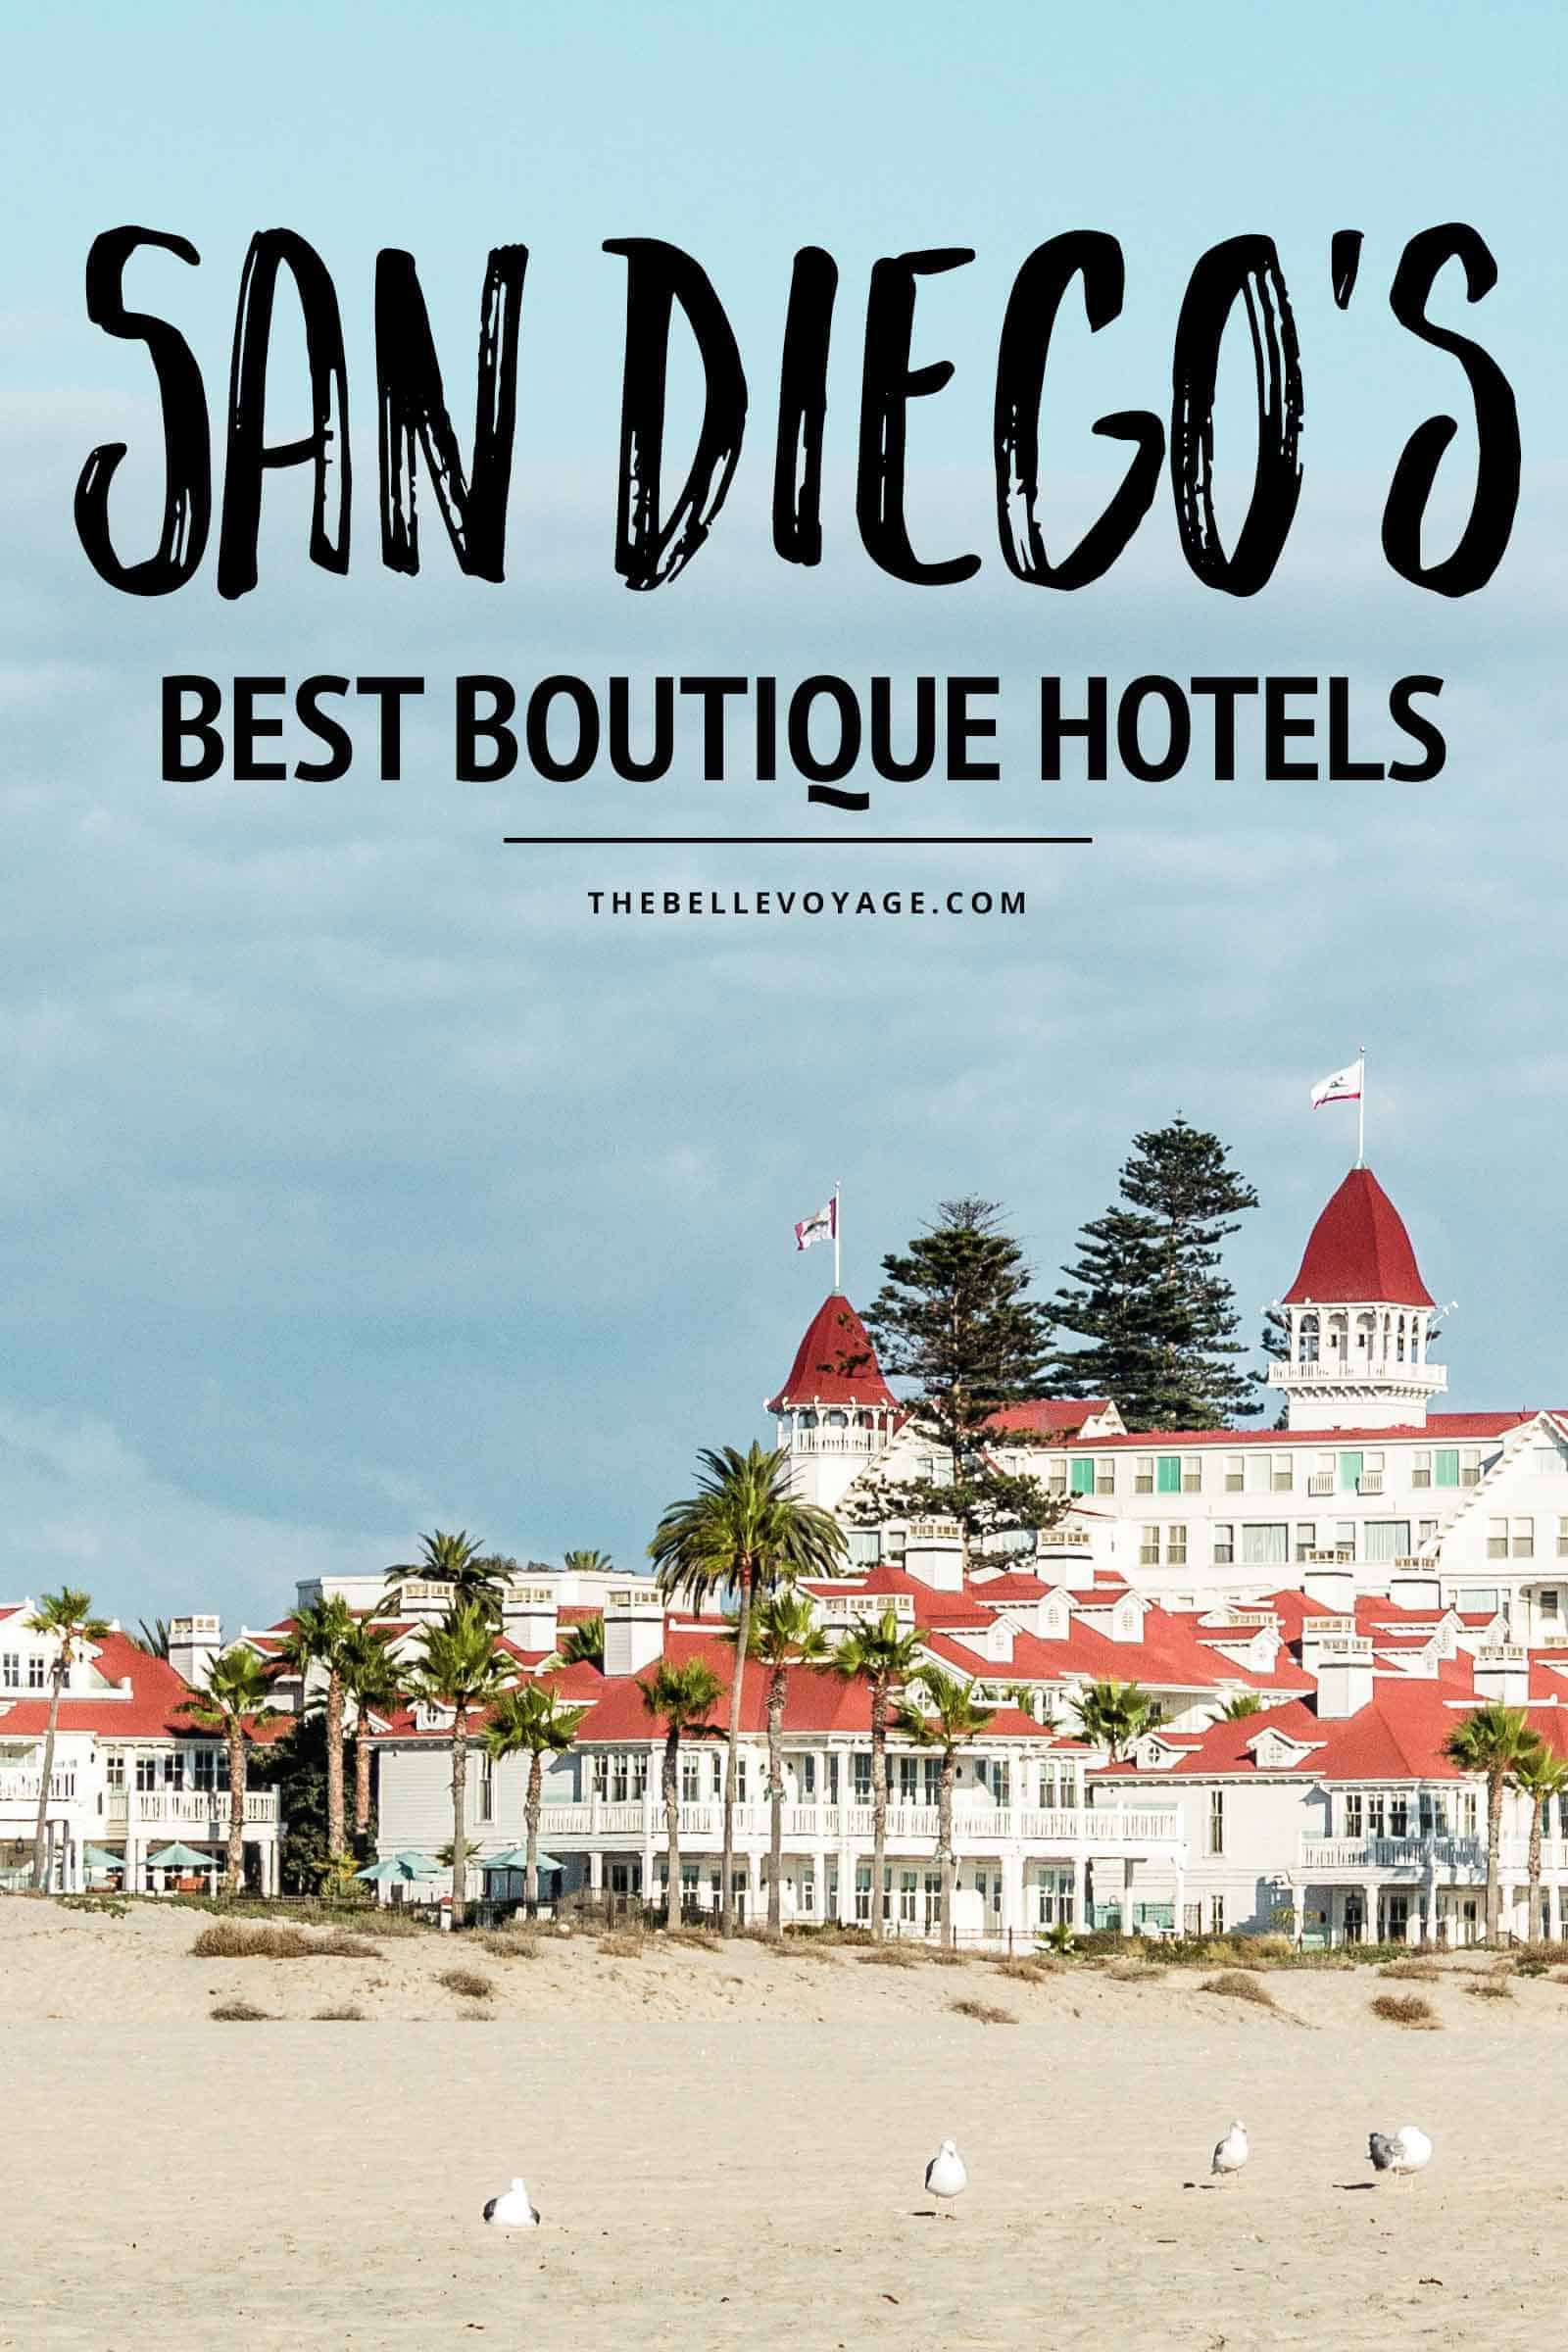 Top 9 San Diego Boutique Hotels for The Perfect Stay | The Belle Voyage